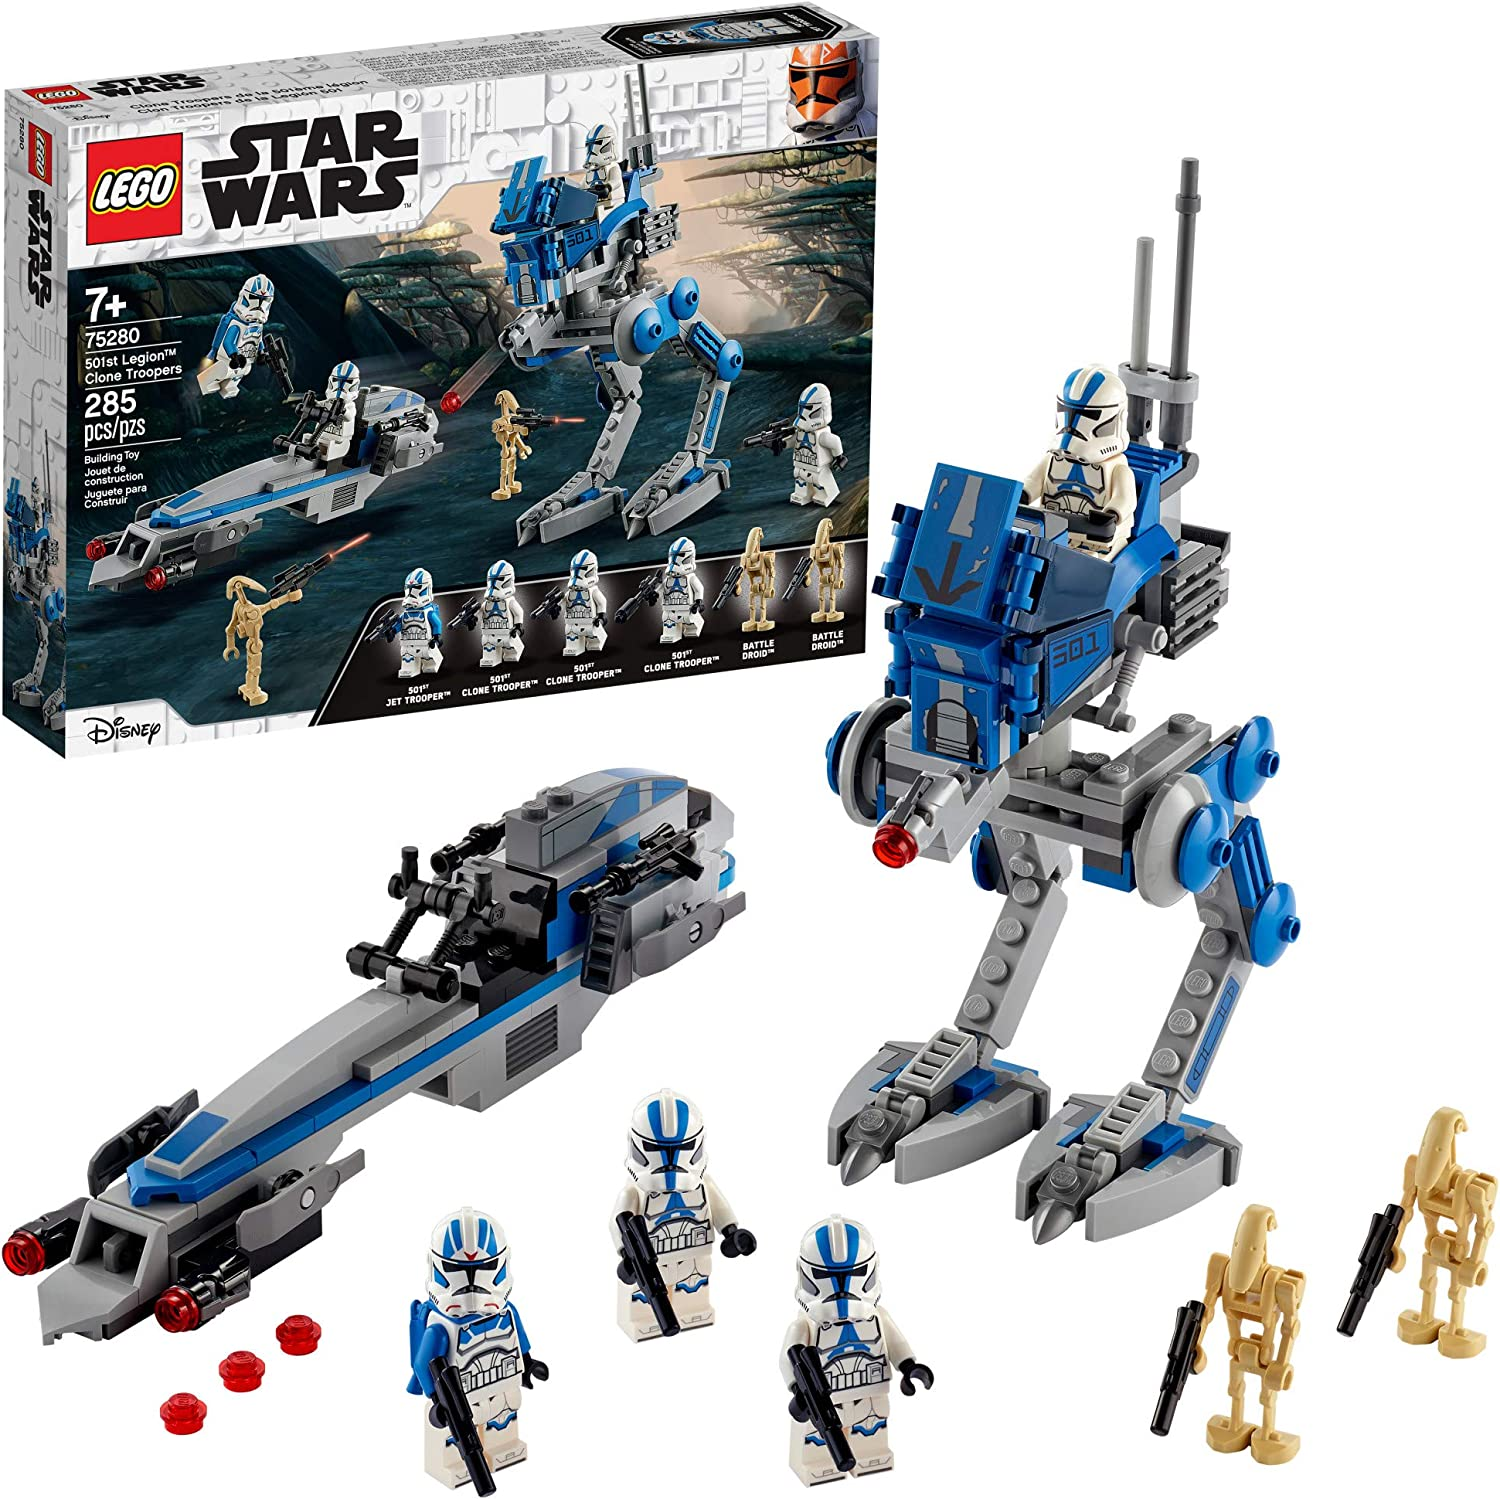 Amazon Com Lego Star Wars 501st Legion Clone Troopers 75280 Building Kit Cool Action Set For Creative Play And Awesome Building Great Gift Or Special Surprise For Kids New 2020 285 Pieces Toys